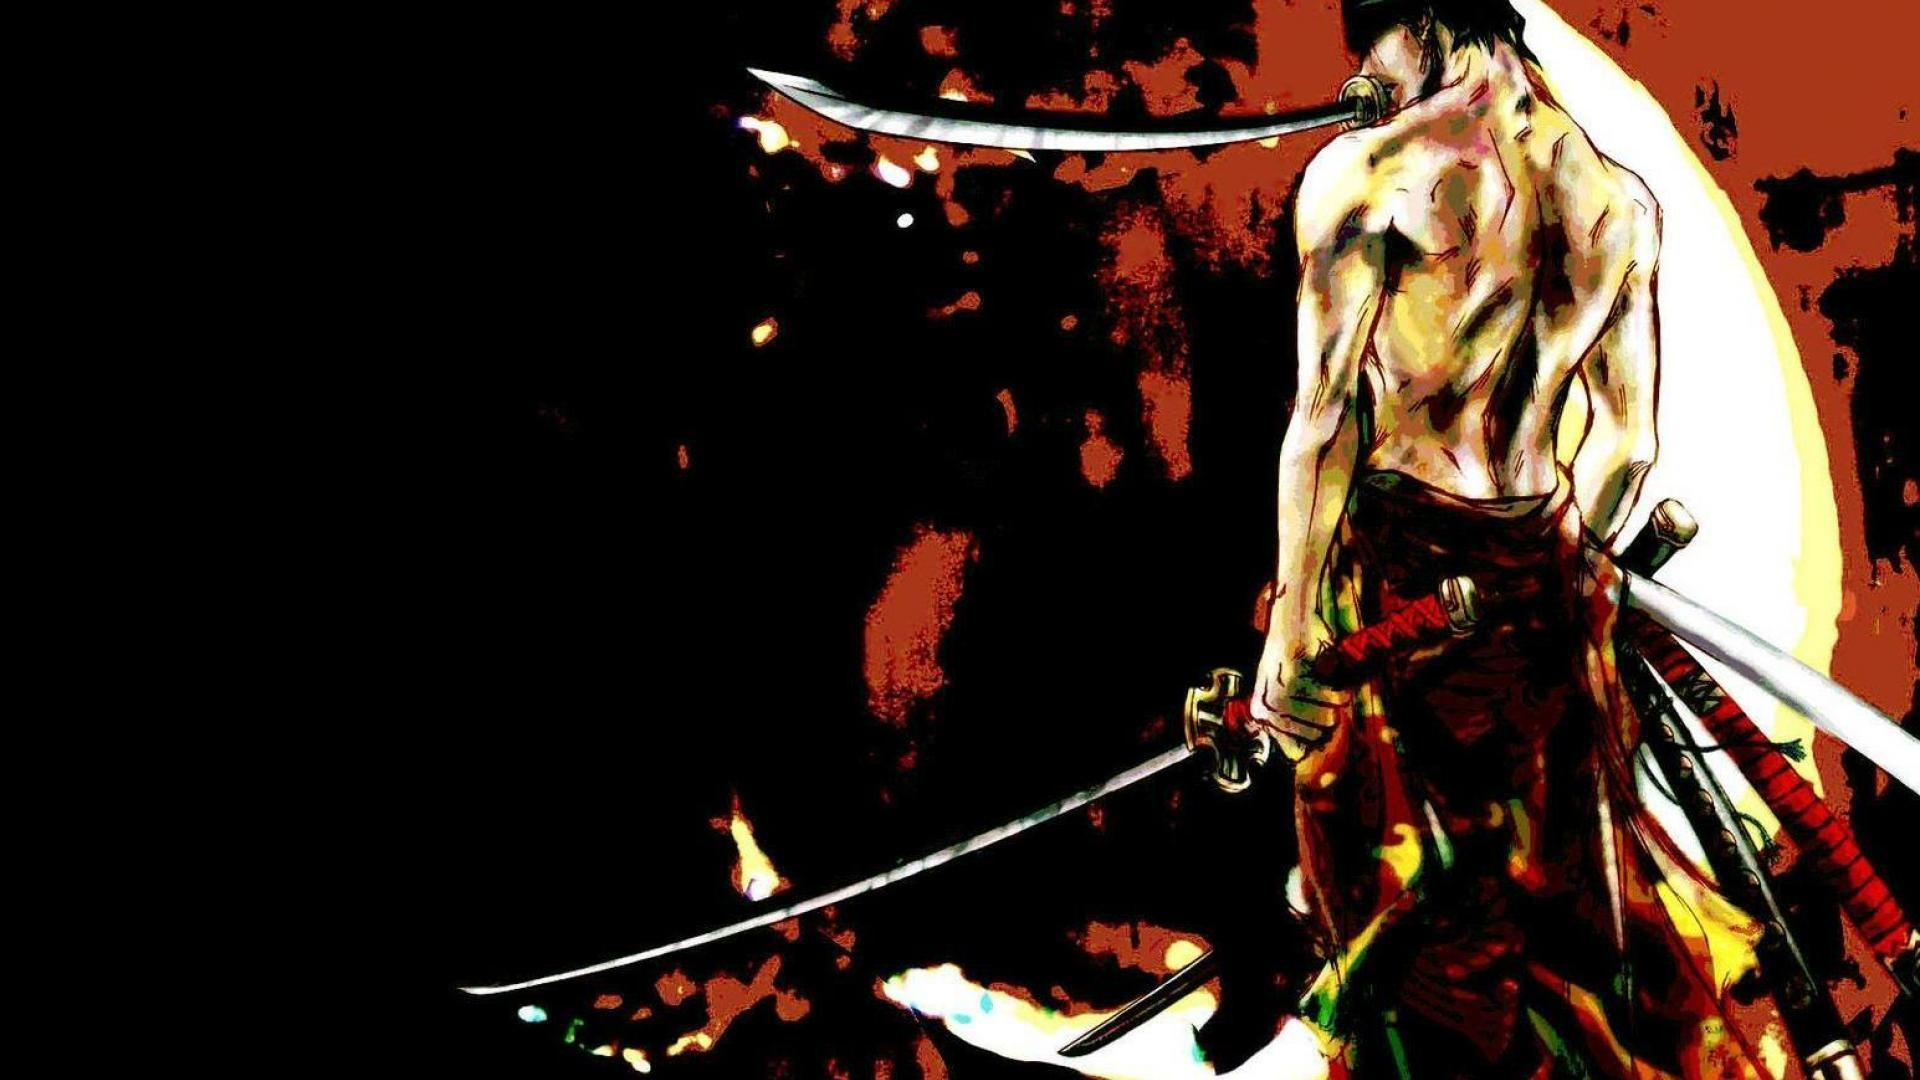 1920x1080 Images For Gt One Piece Wallpaper Zoro Roronoa Zoro Wallpaper Iphone ...